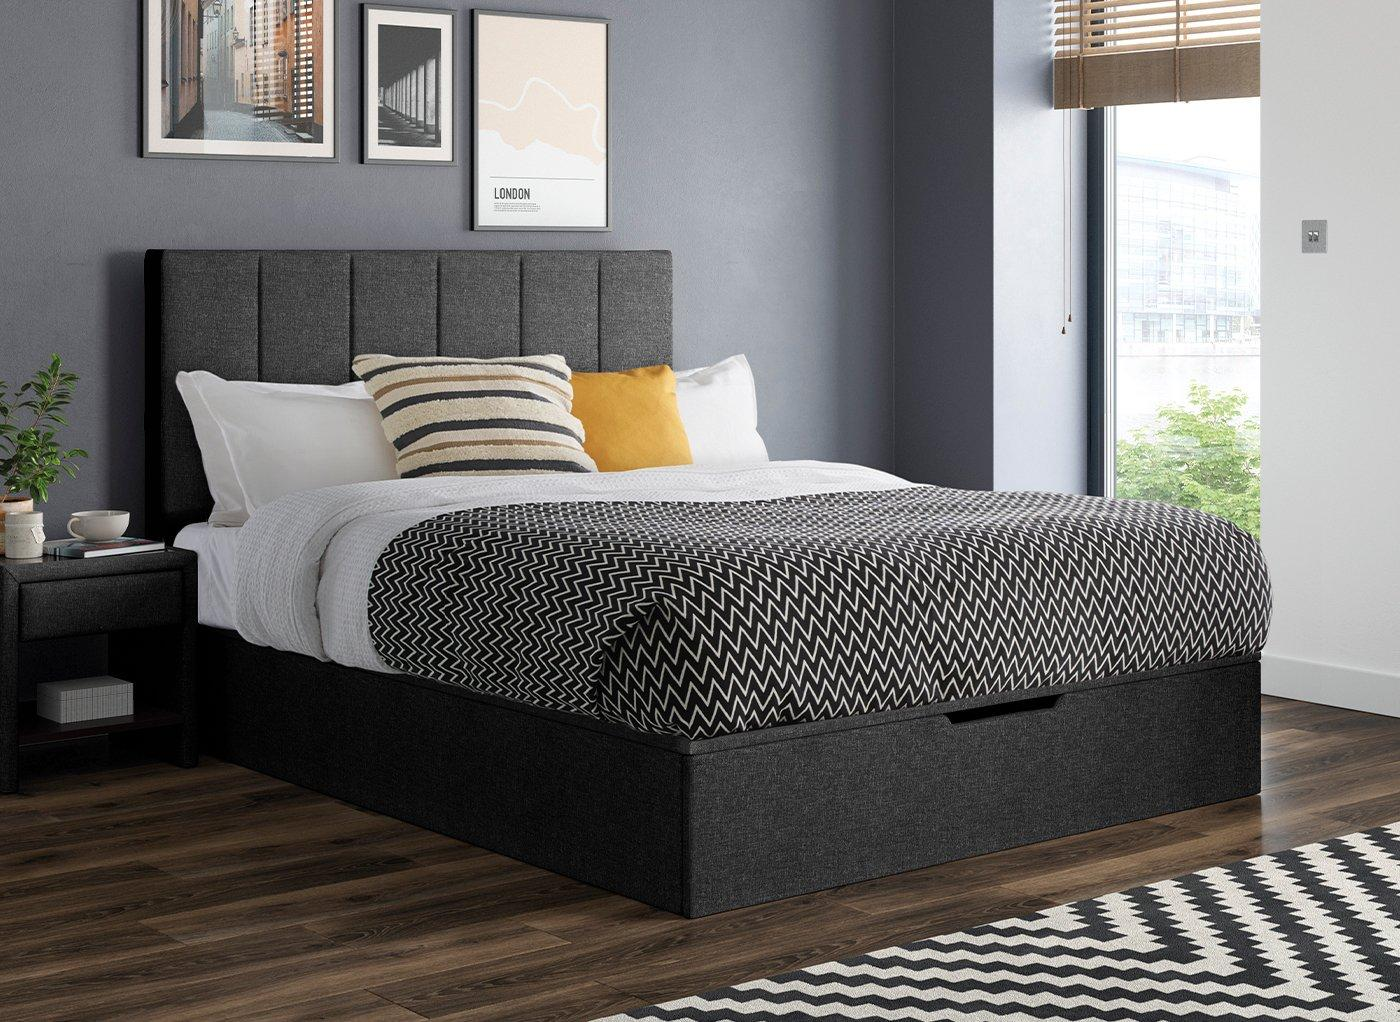 Bed frame with no foot end